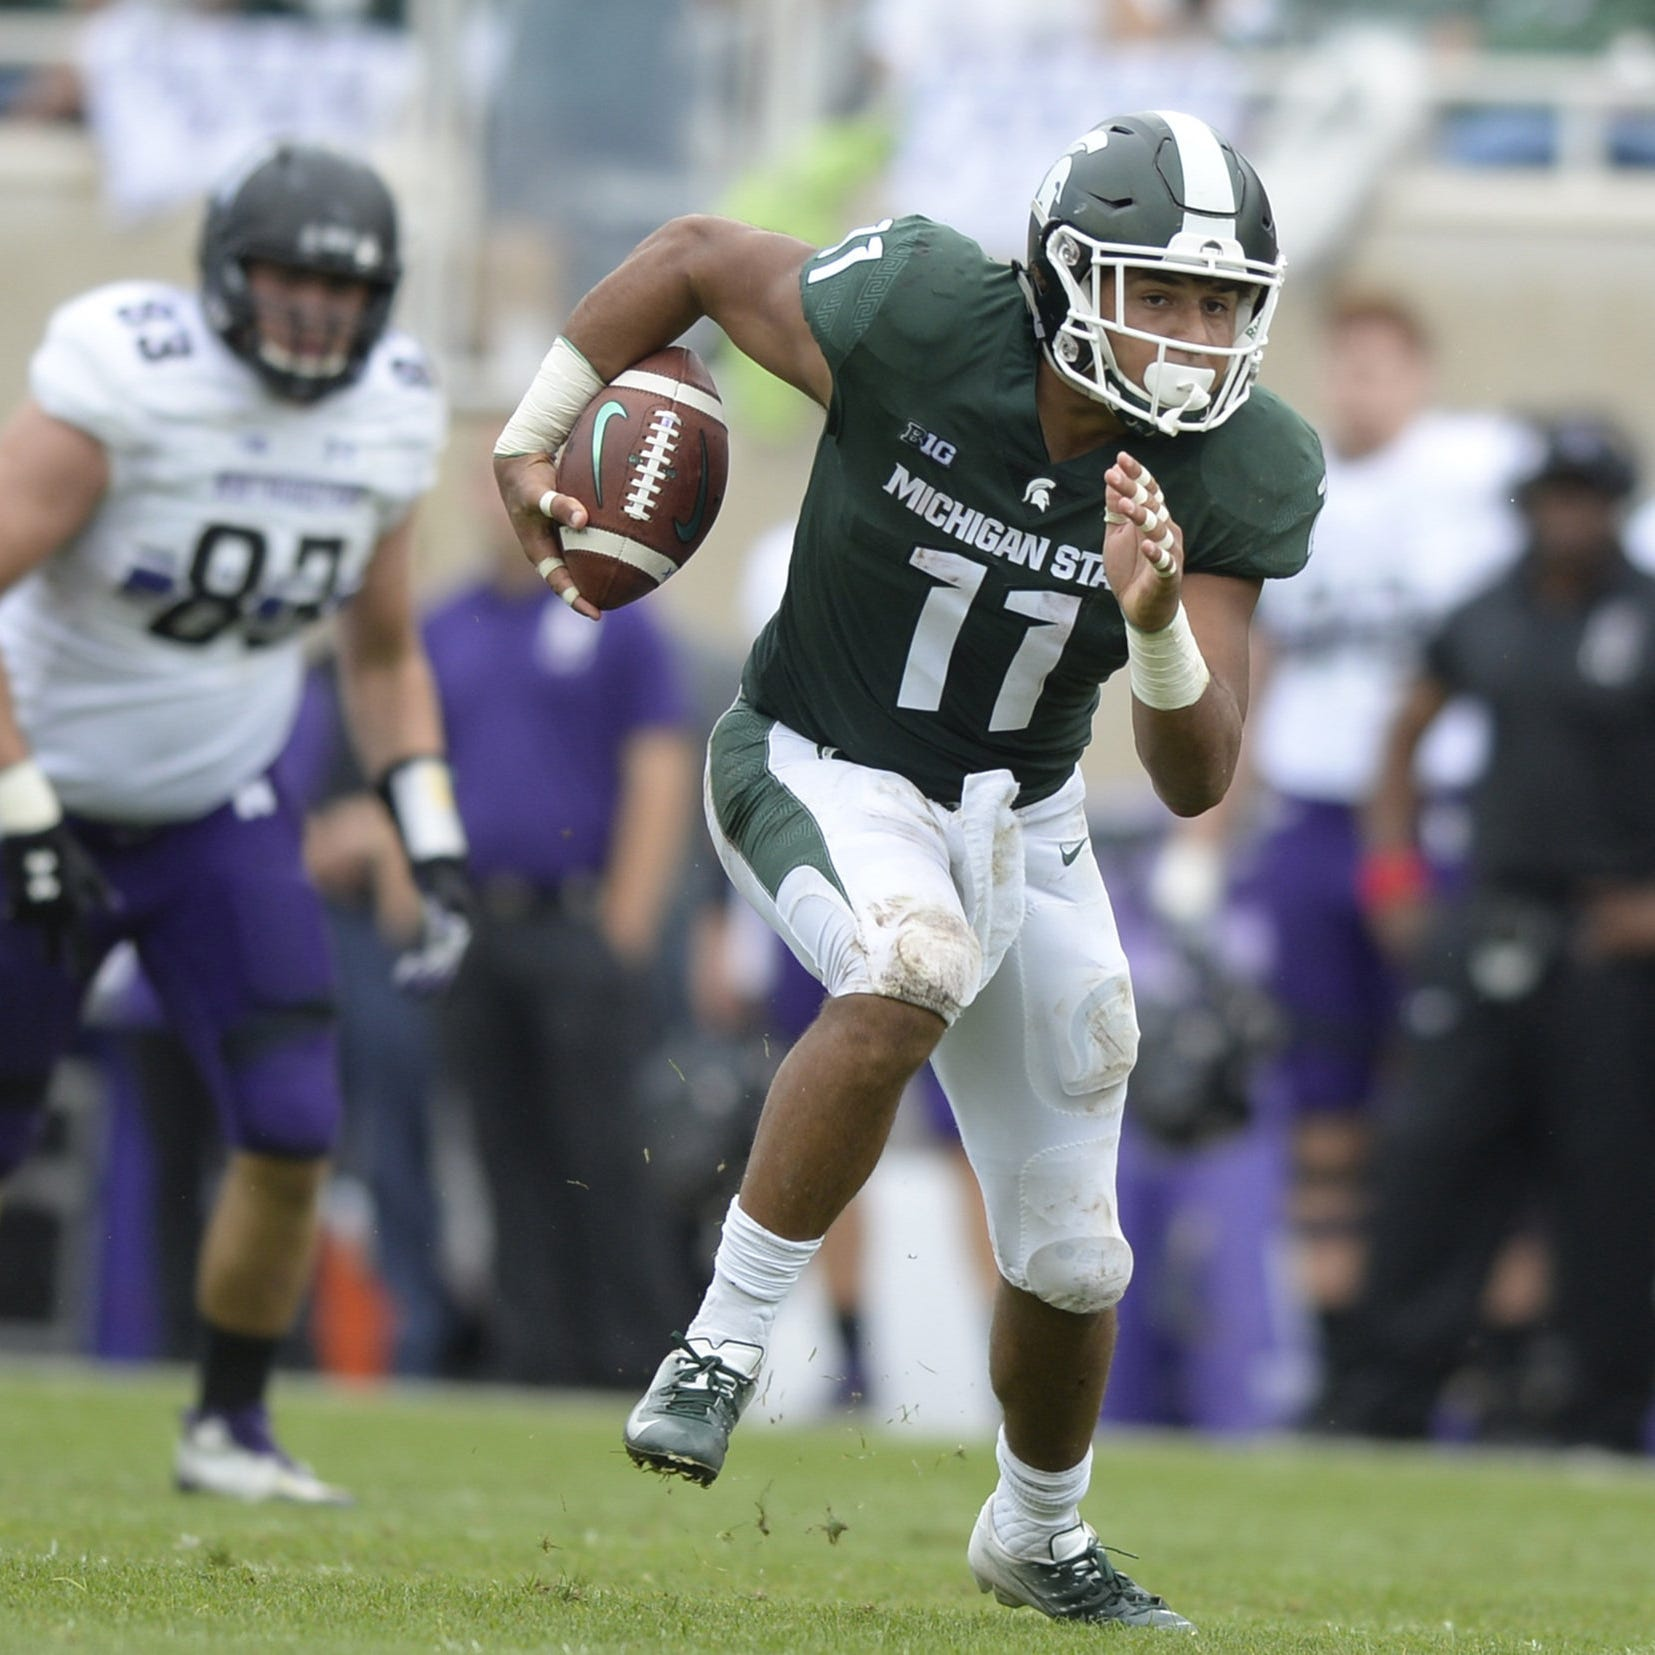 Michigan State auditions cavalcade of prime candidates at tailback